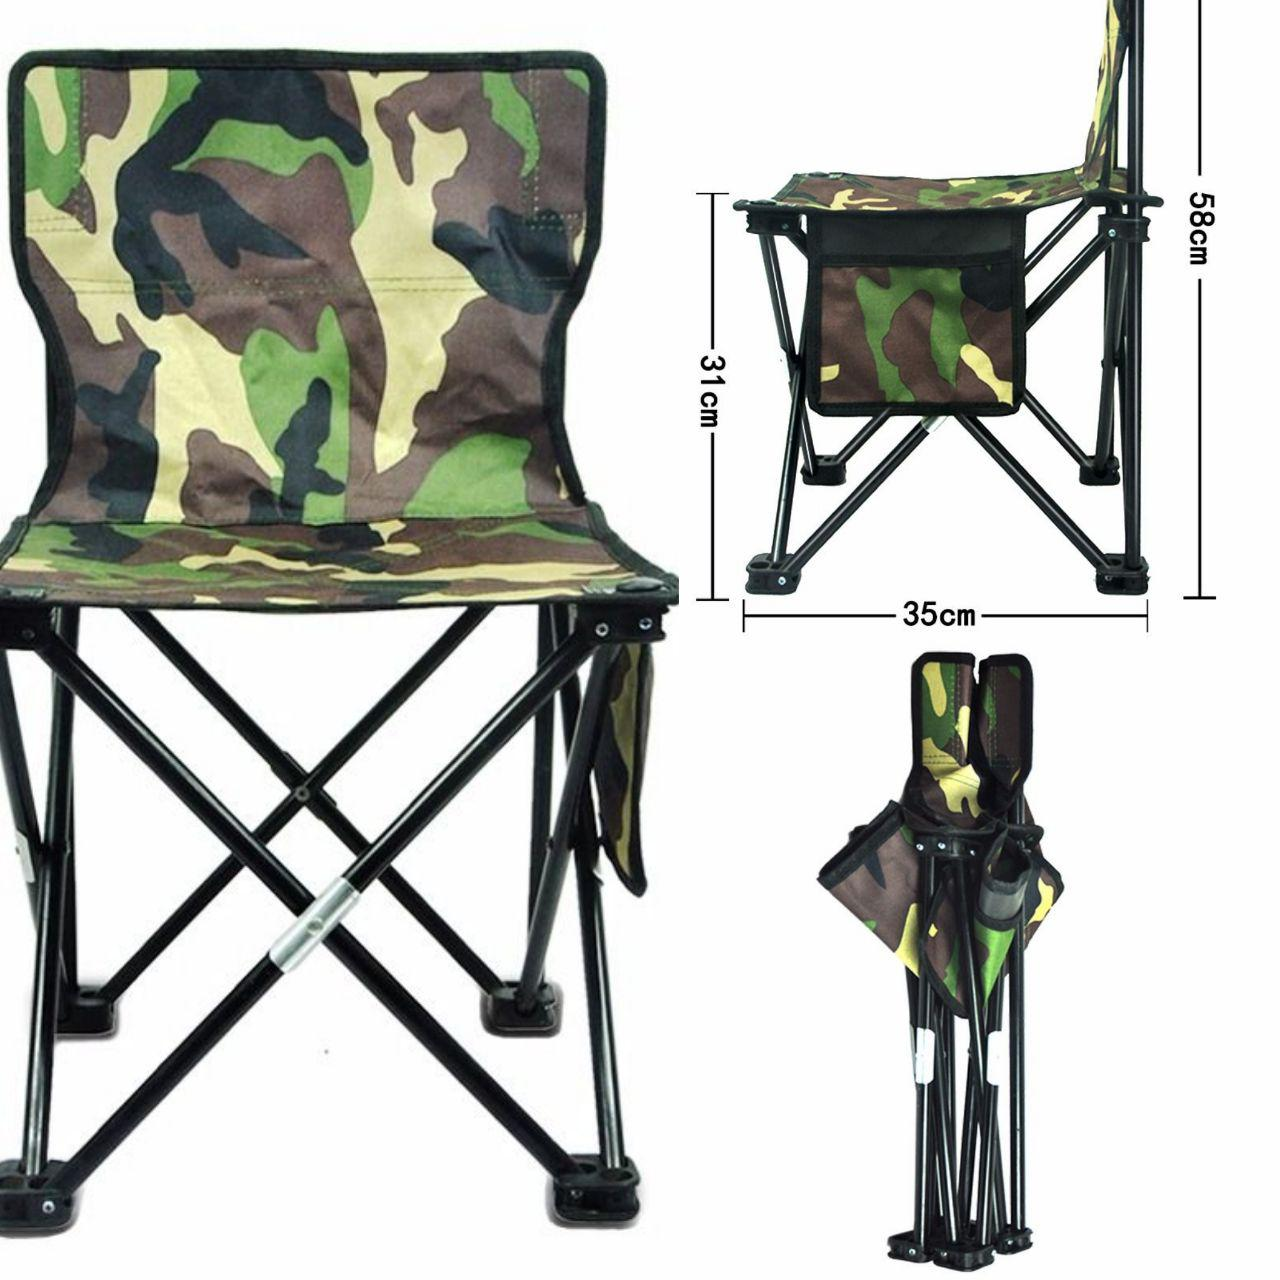 Super Heavy Duty Portable Folding Chair With Carry Bag For Indoor And Outdoor Use Can Lift Upto 110Kgs Pdpeps Interior Chair Design Pdpepsorg